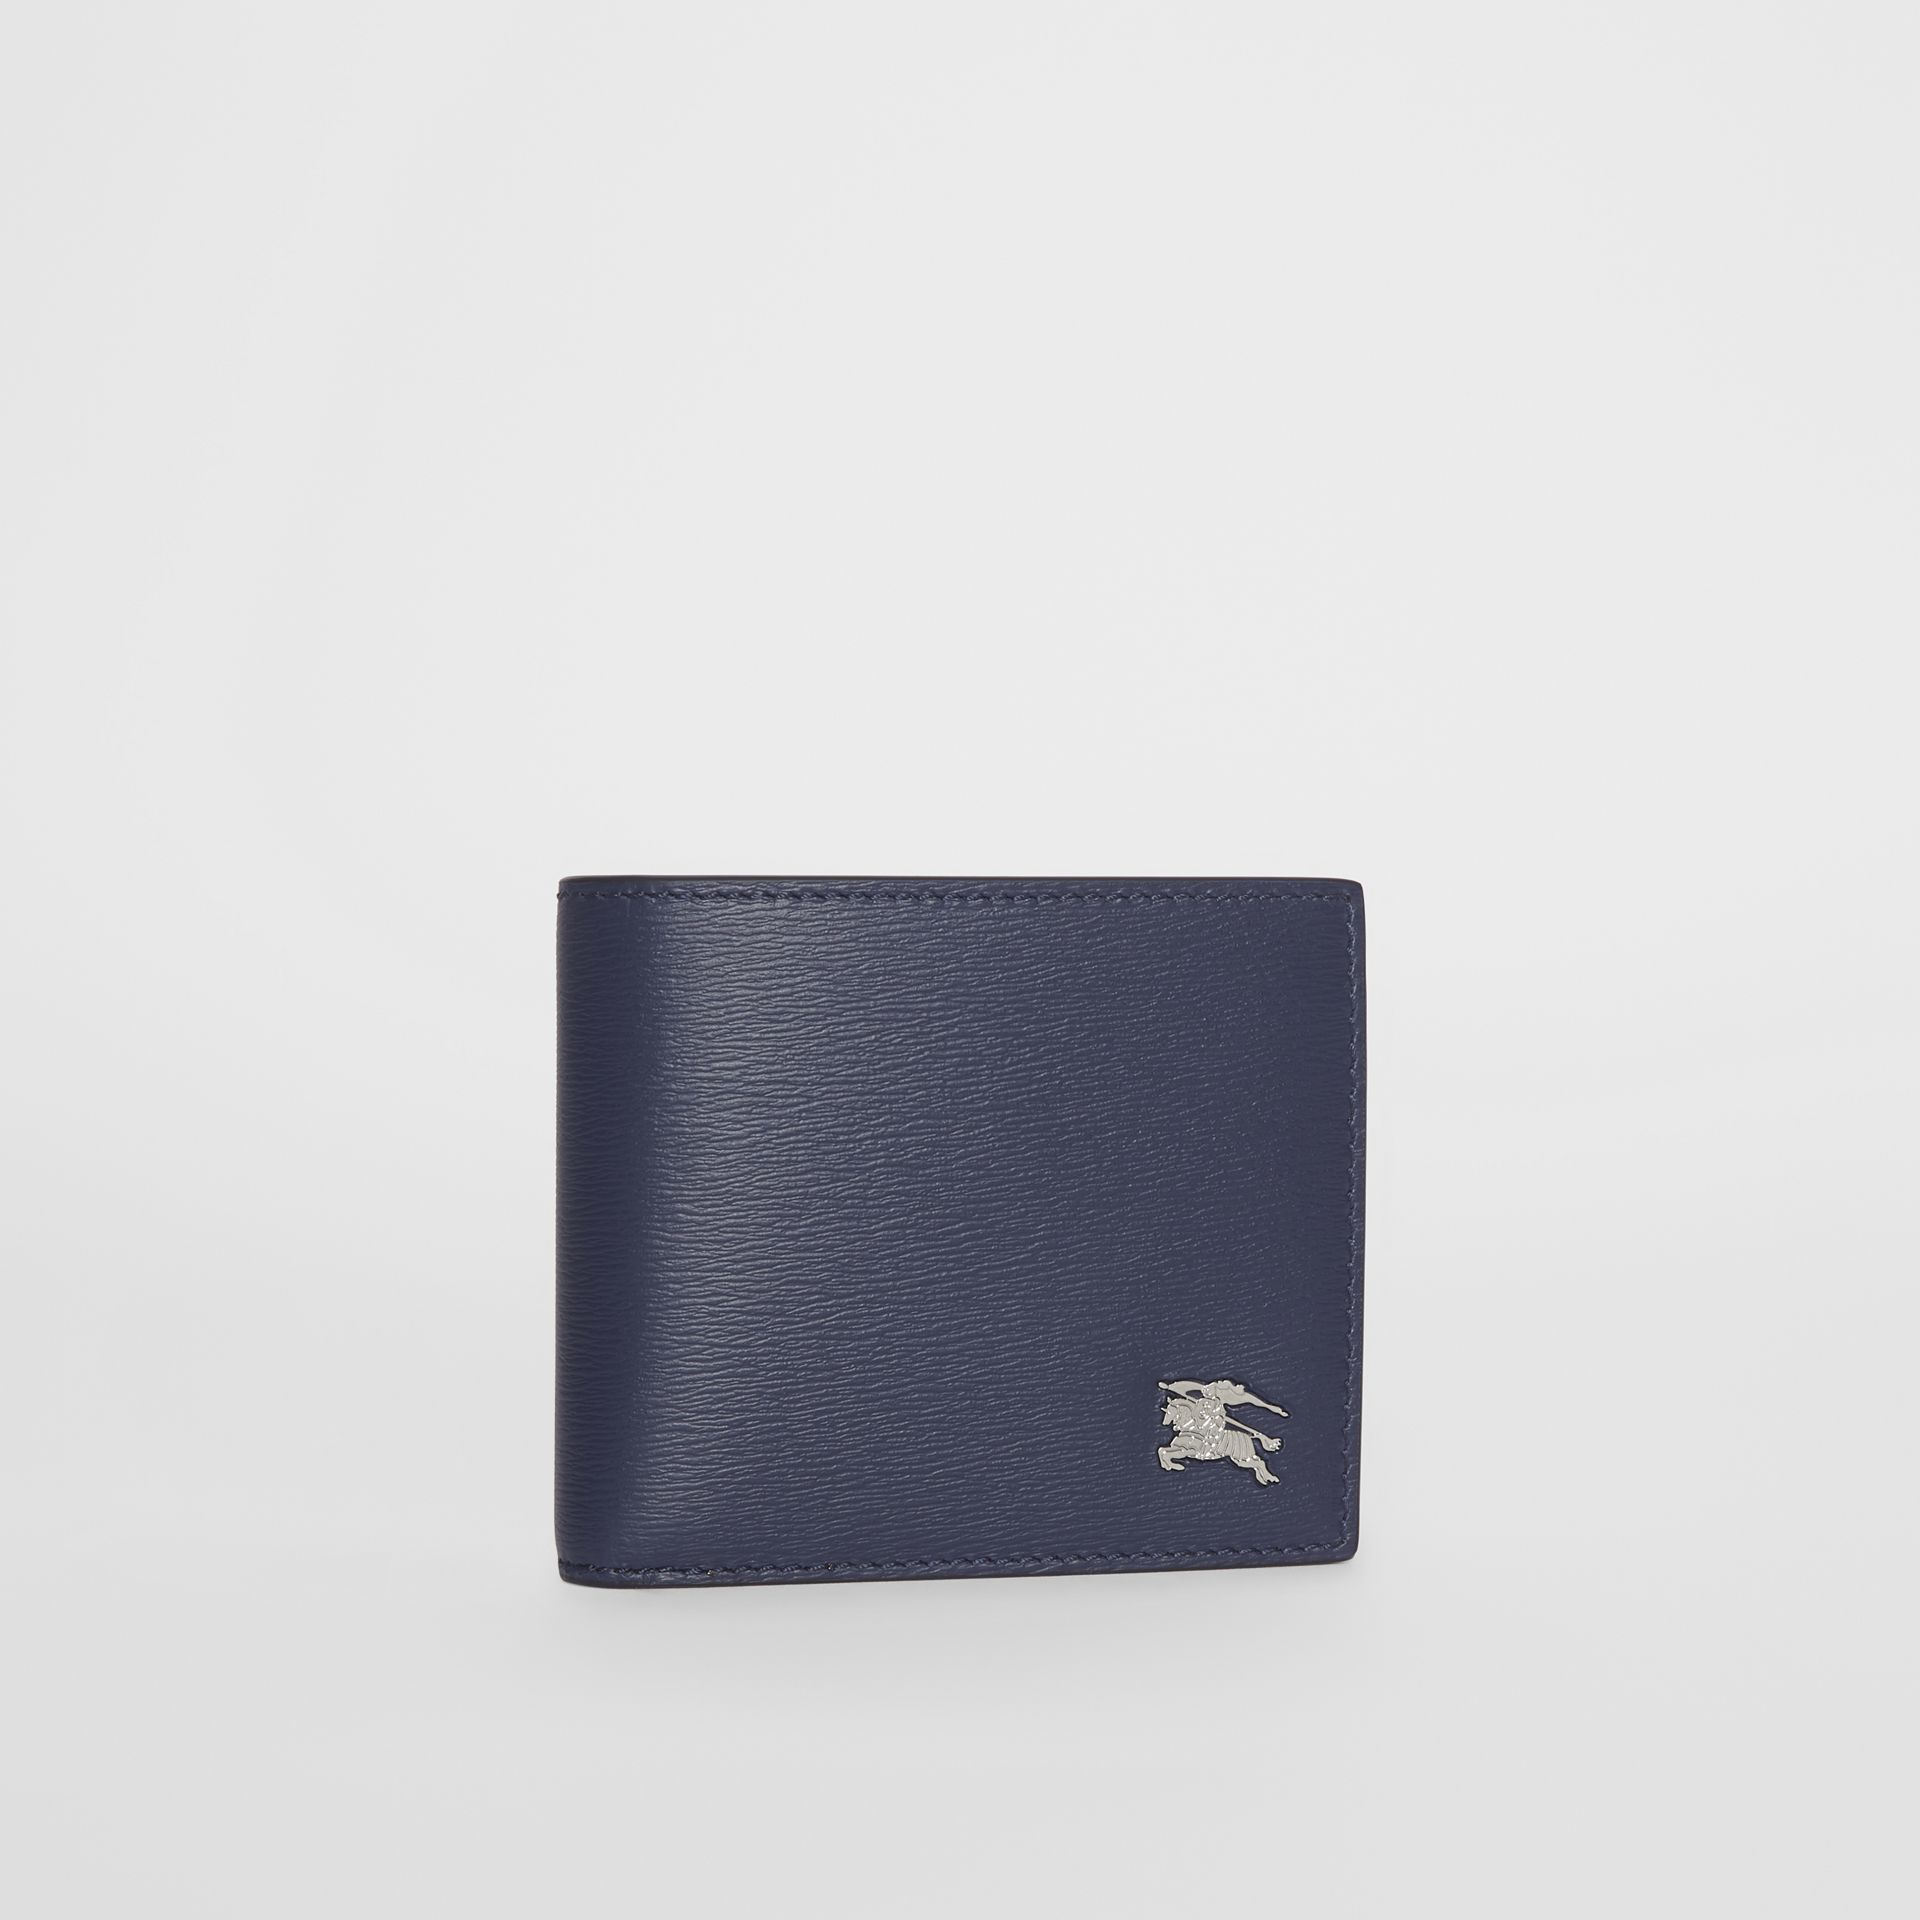 London Leather Bifold Wallet with ID Card Case in Navy - Men | Burberry Australia - gallery image 3